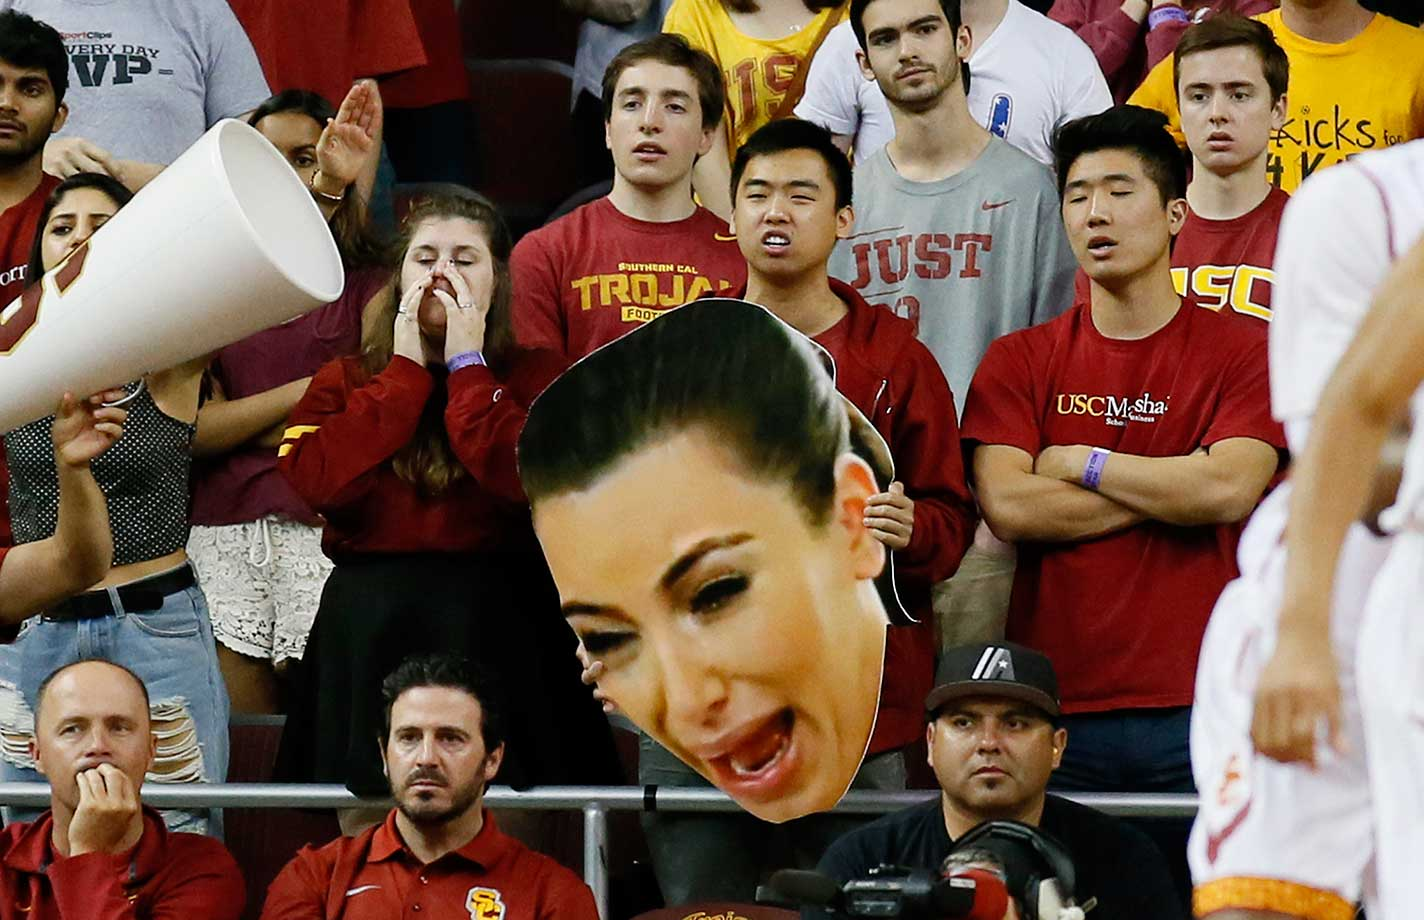 Fans use a large photo of Kim Kardashian as they try to distract Utah. It didn't work as USC lost 80-69.